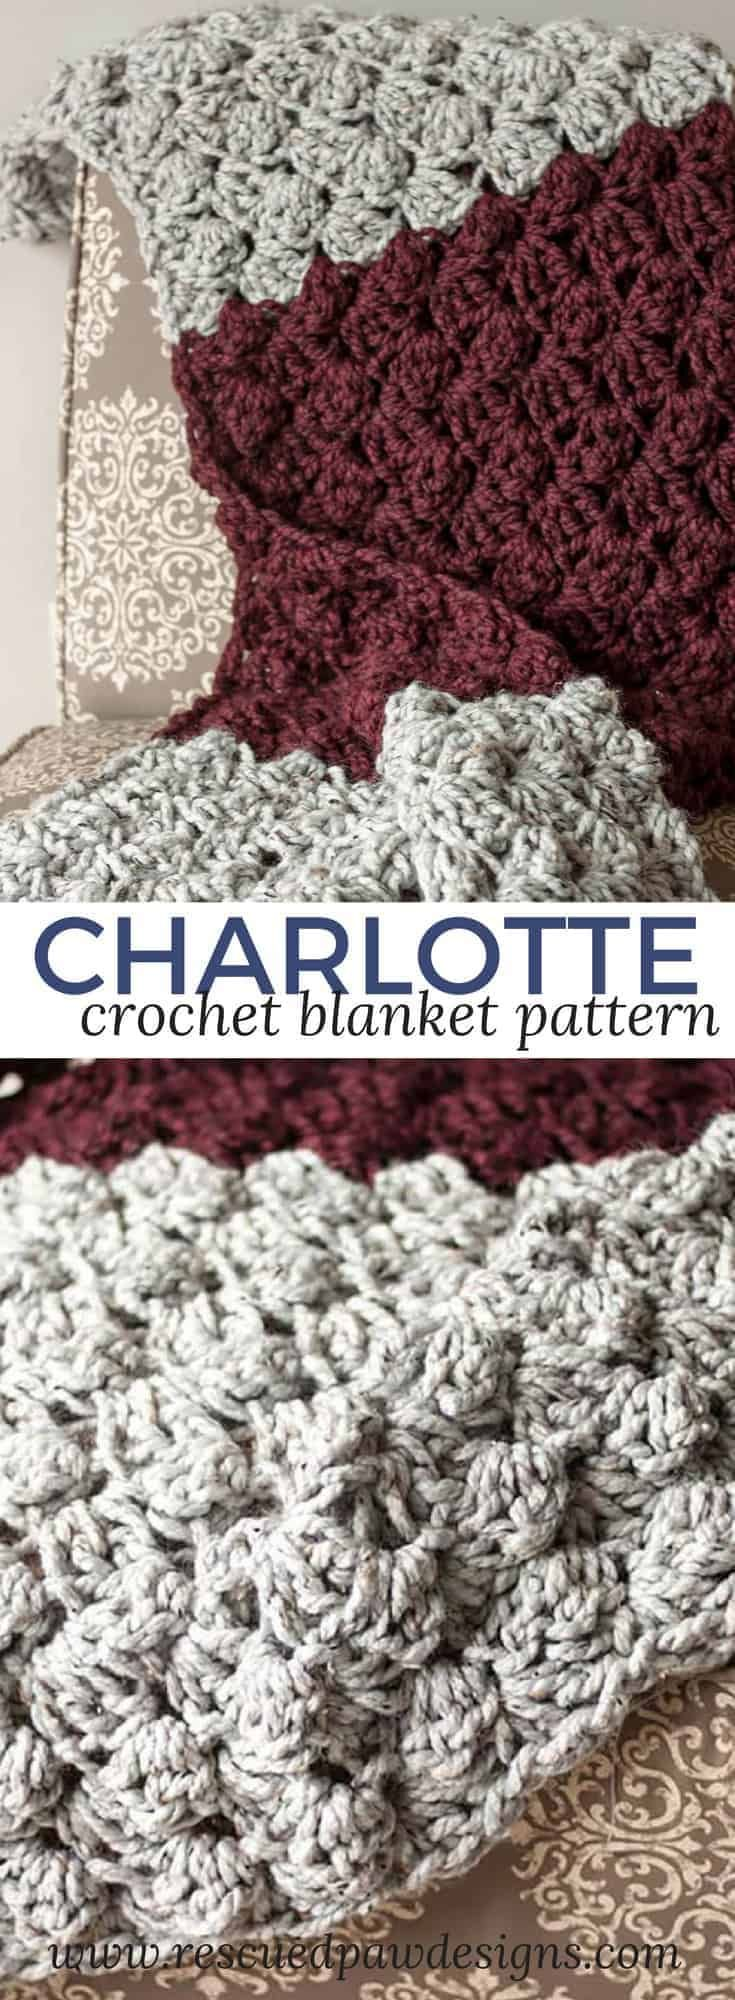 CHARLOTTE CROCHET BLANKET March 22, 2017 by Krista 2 Comments  140.9K SHARES 140…